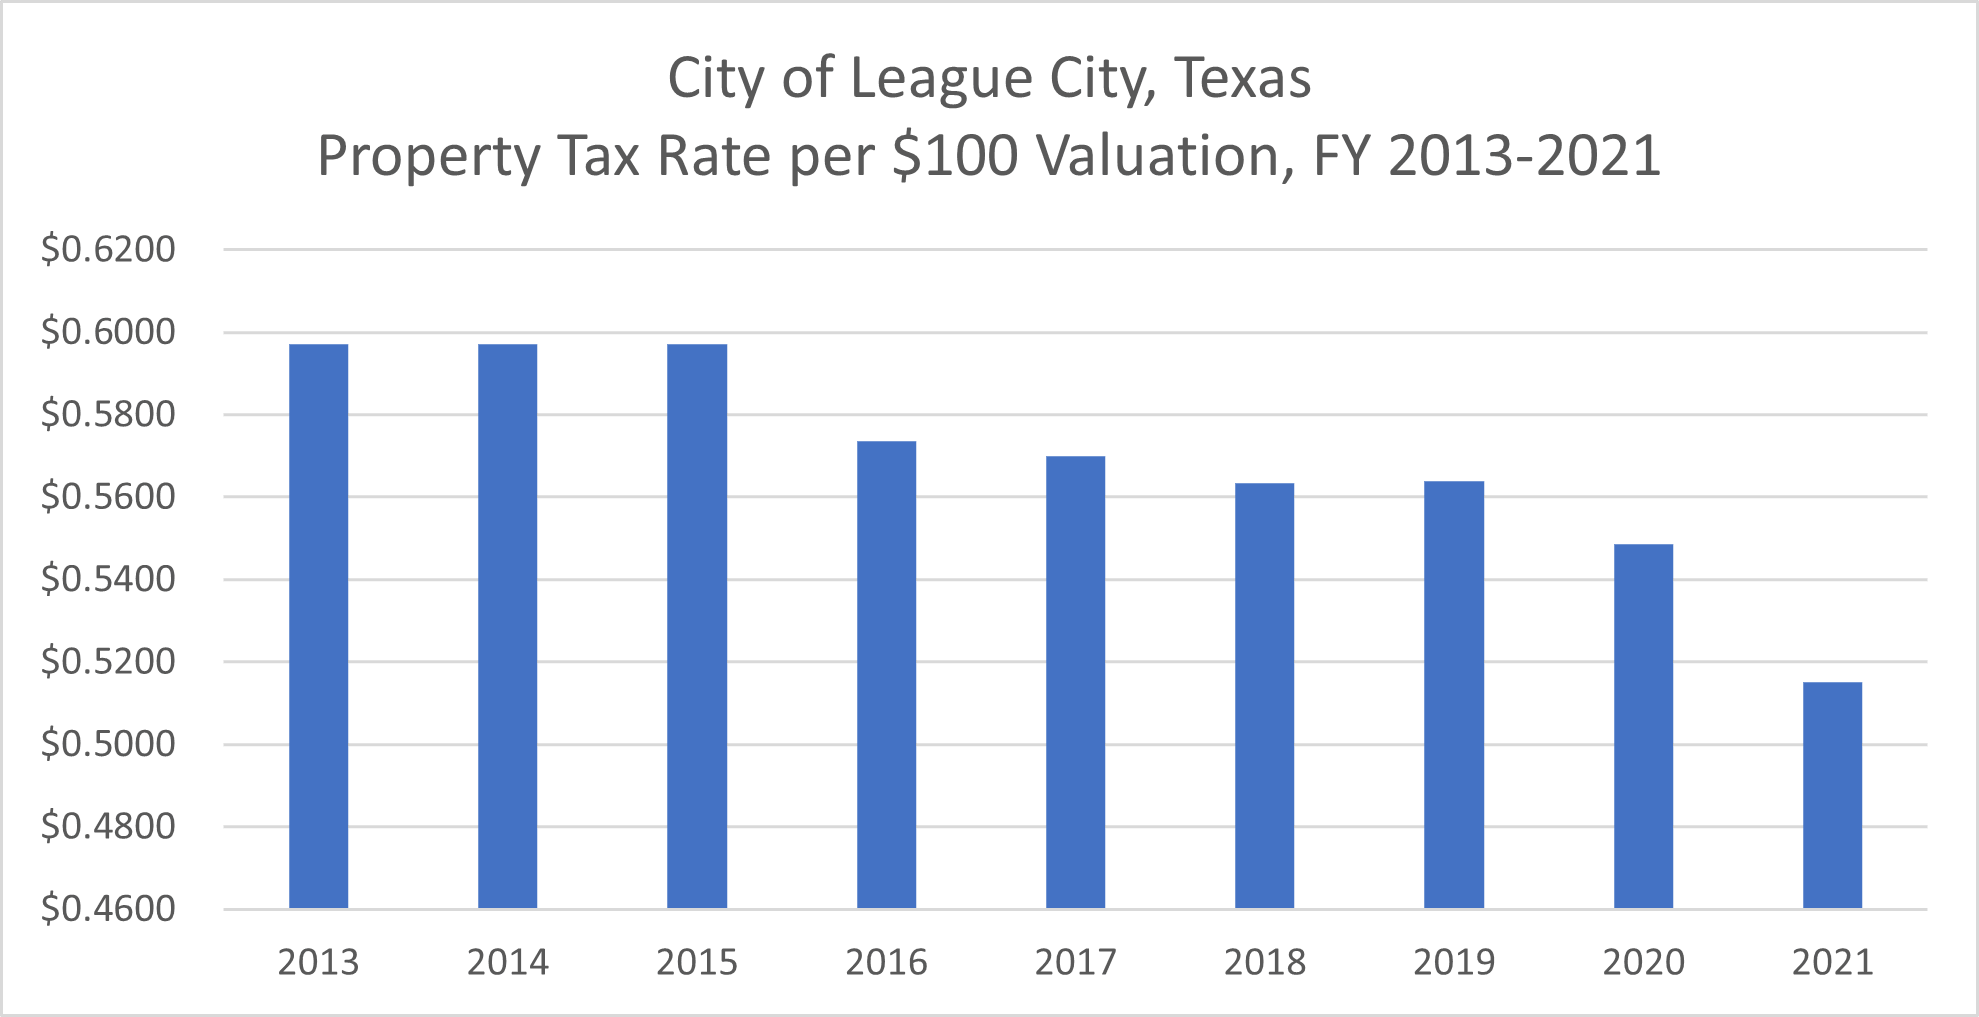 A graph showing the property tax rate per $100 valuation for fiscal years 2011 to 2018.